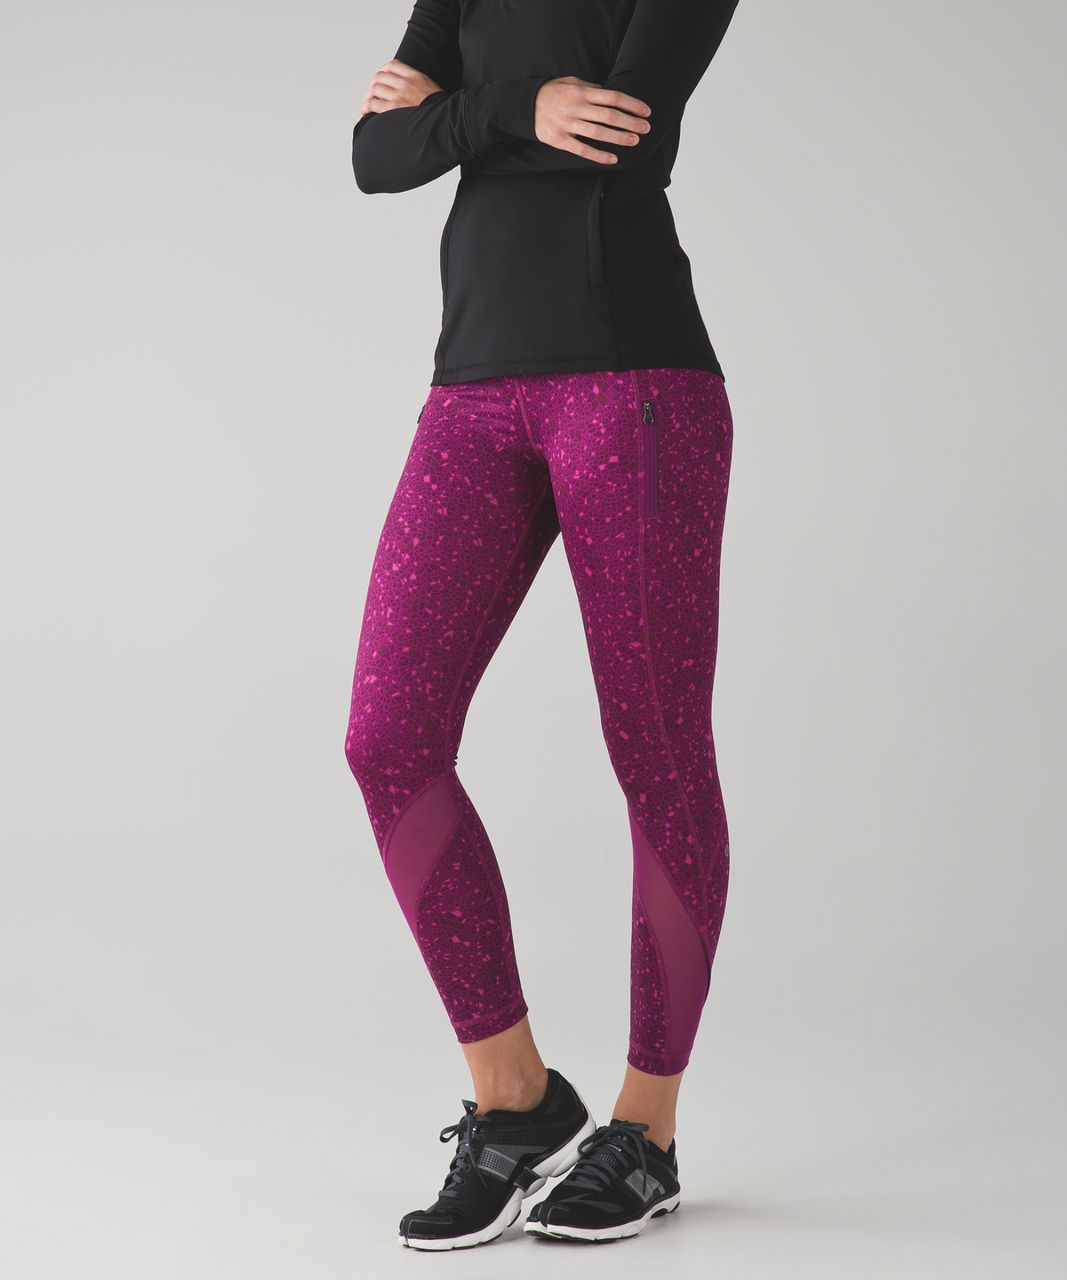 Lululemon Inspire Tight II - Paradise Geo Regal Plum Multi / Regal Plum